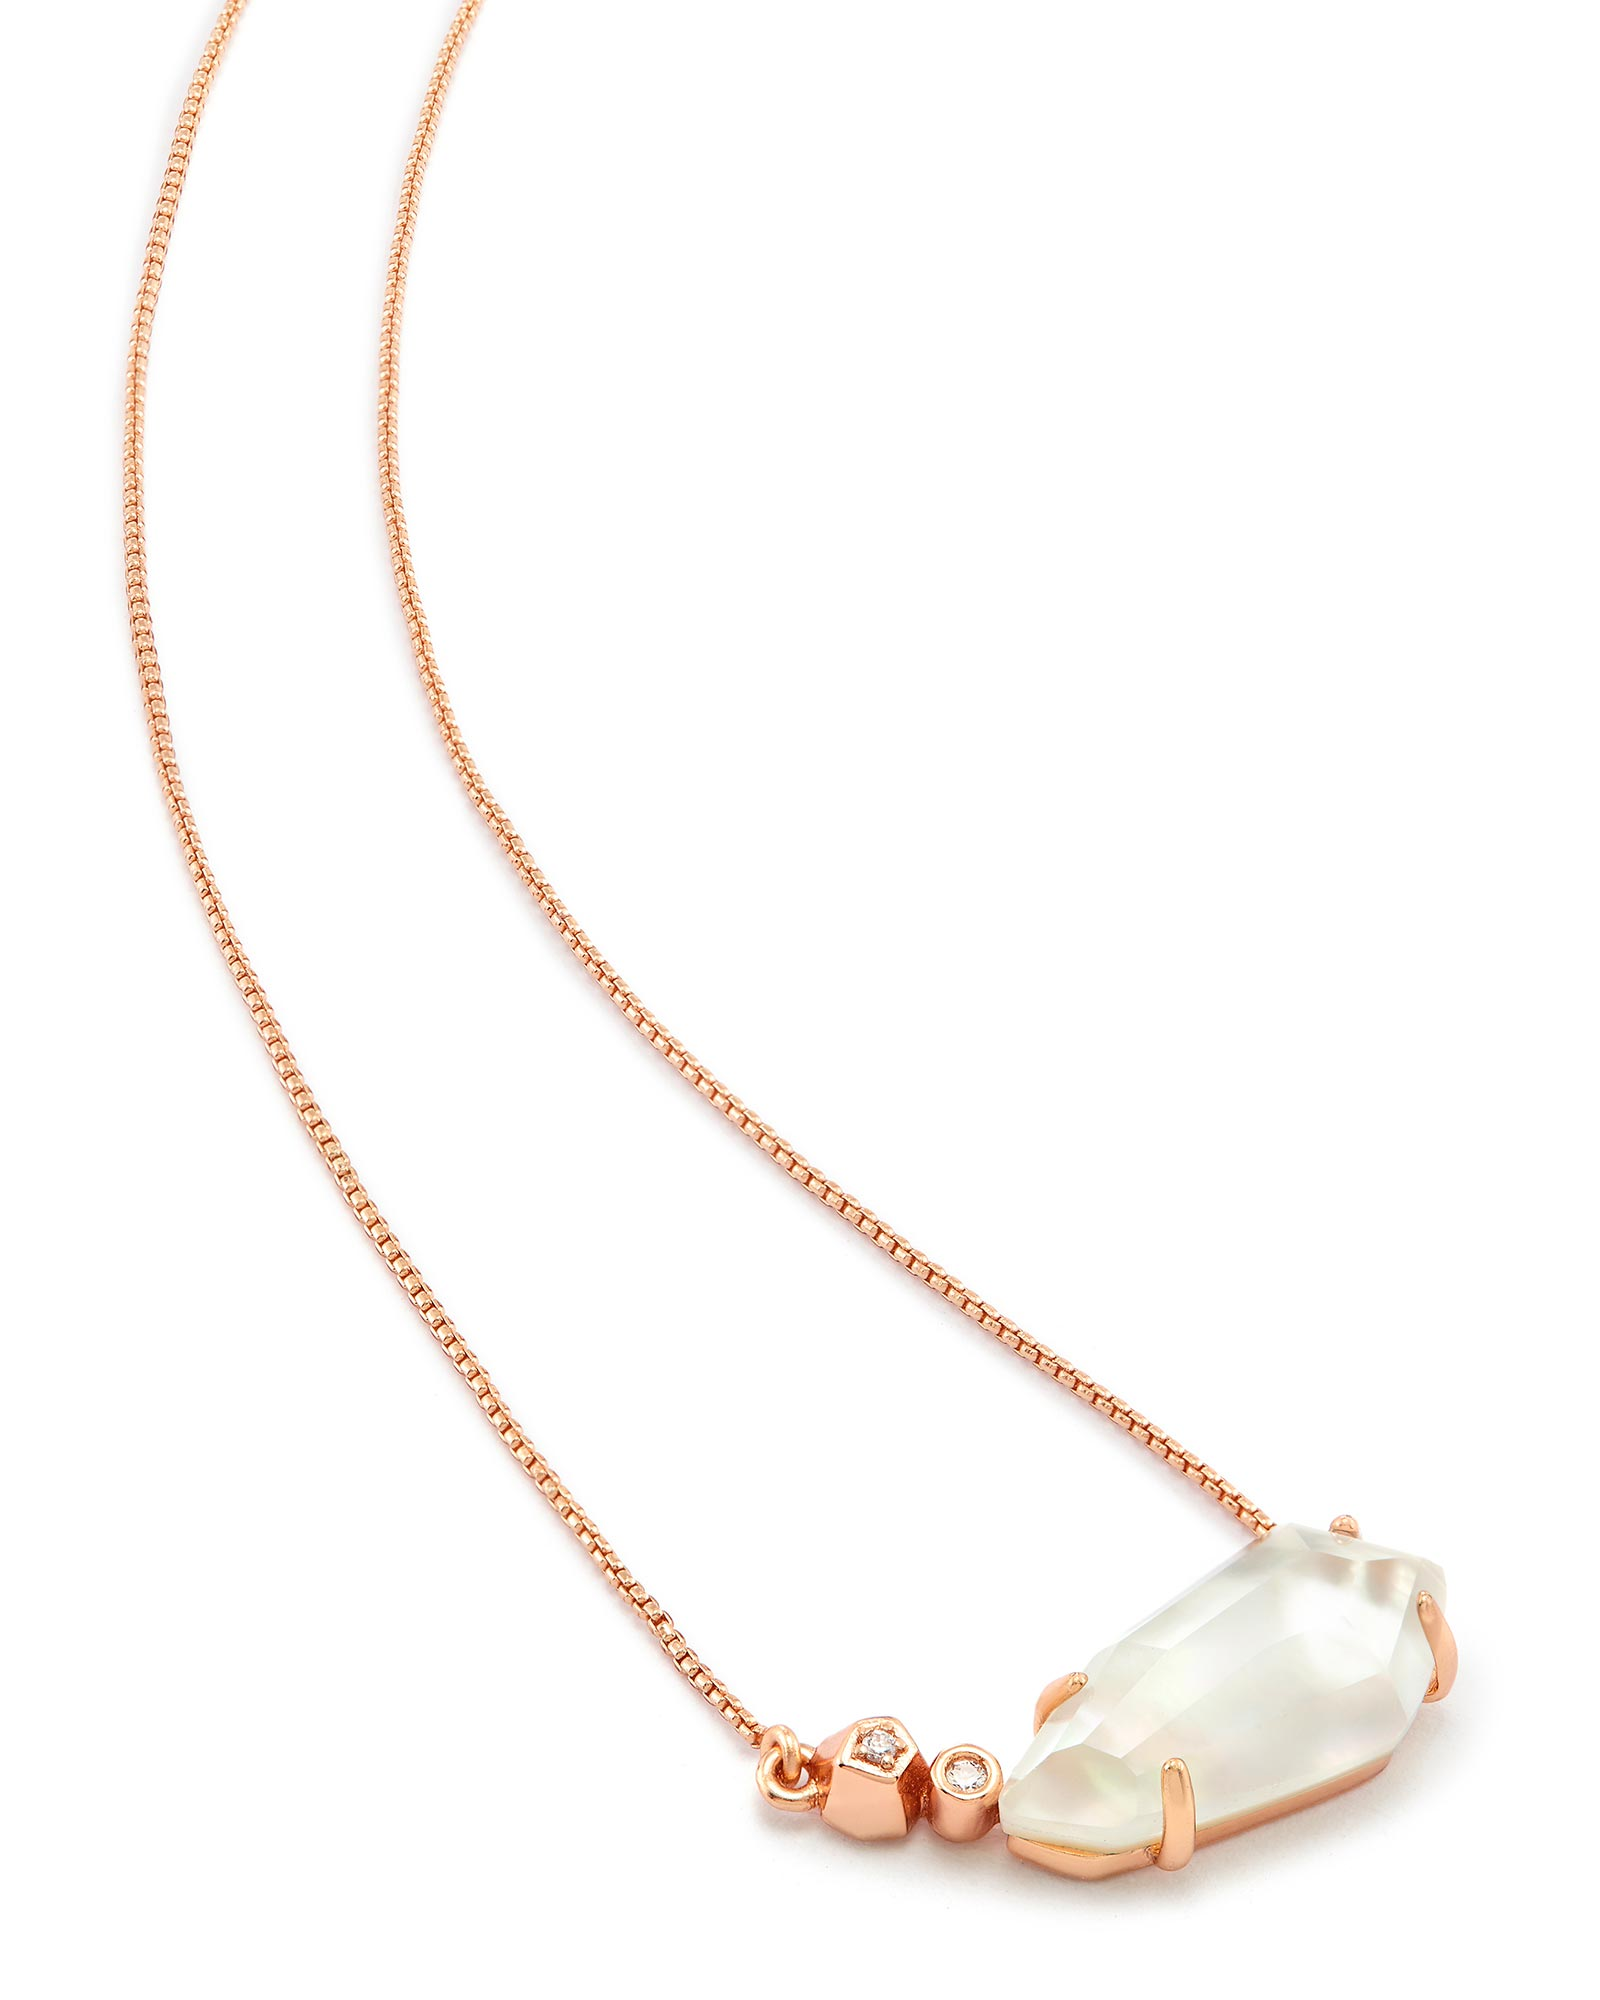 Barbara Pendant Necklace in Rose Gold